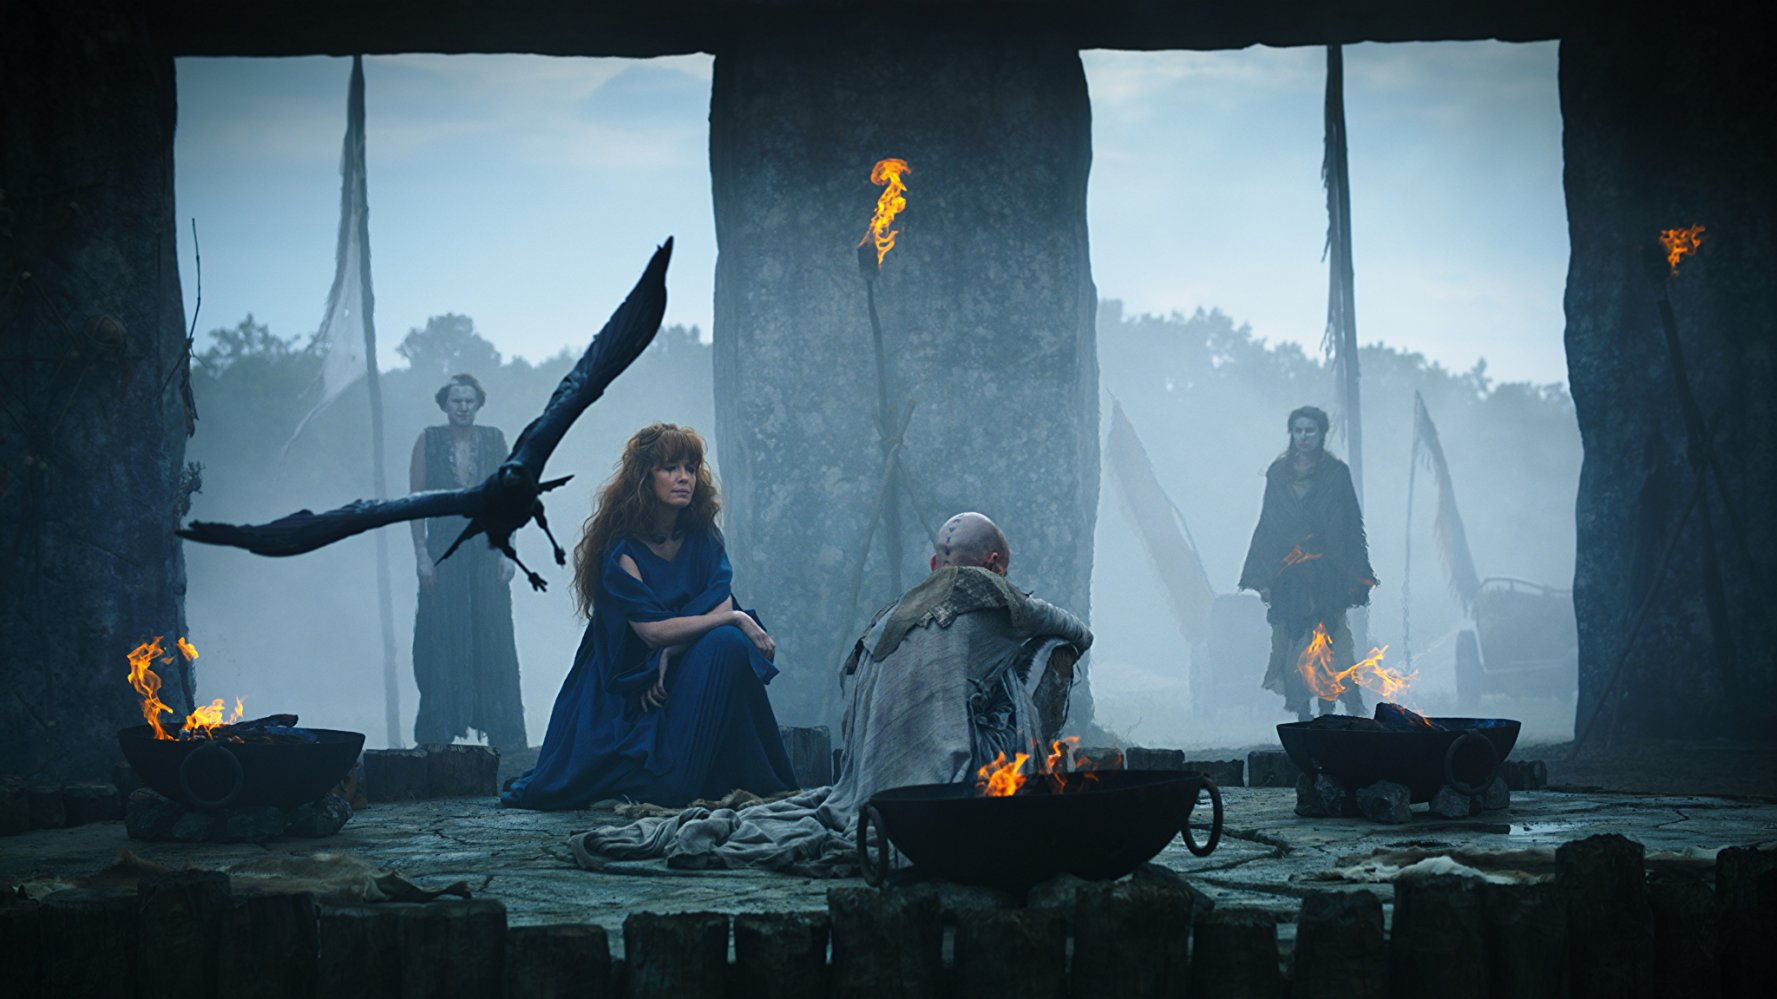 Britannia: What's the show about? Is it worth watching? And is it anything like Game of Thrones?